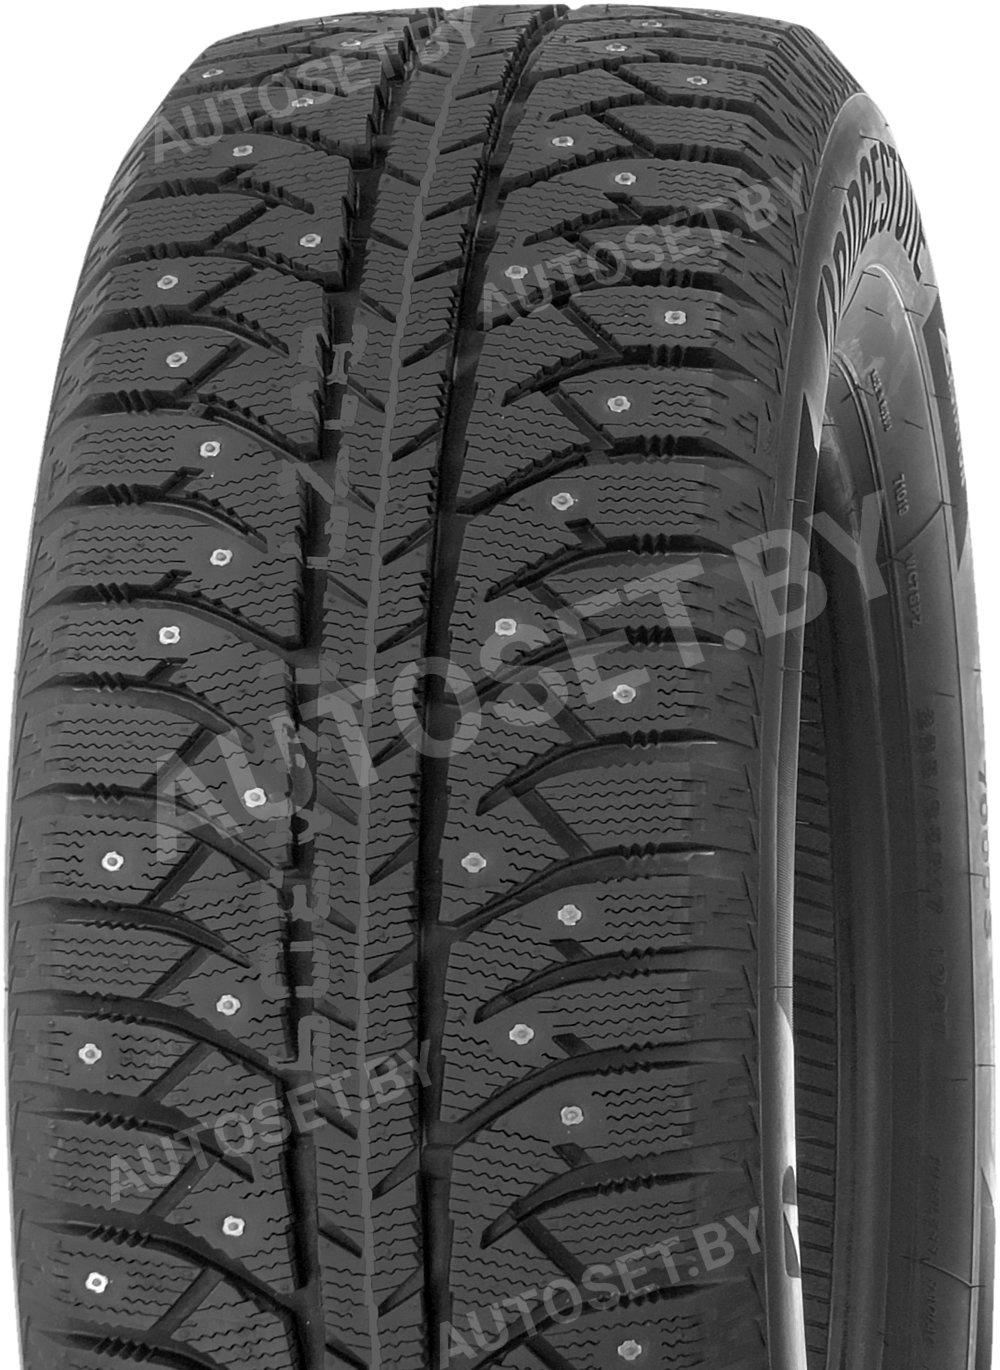 Зимняя шина BRIDGESTONE Ice Cruiser 7000S – вид 2